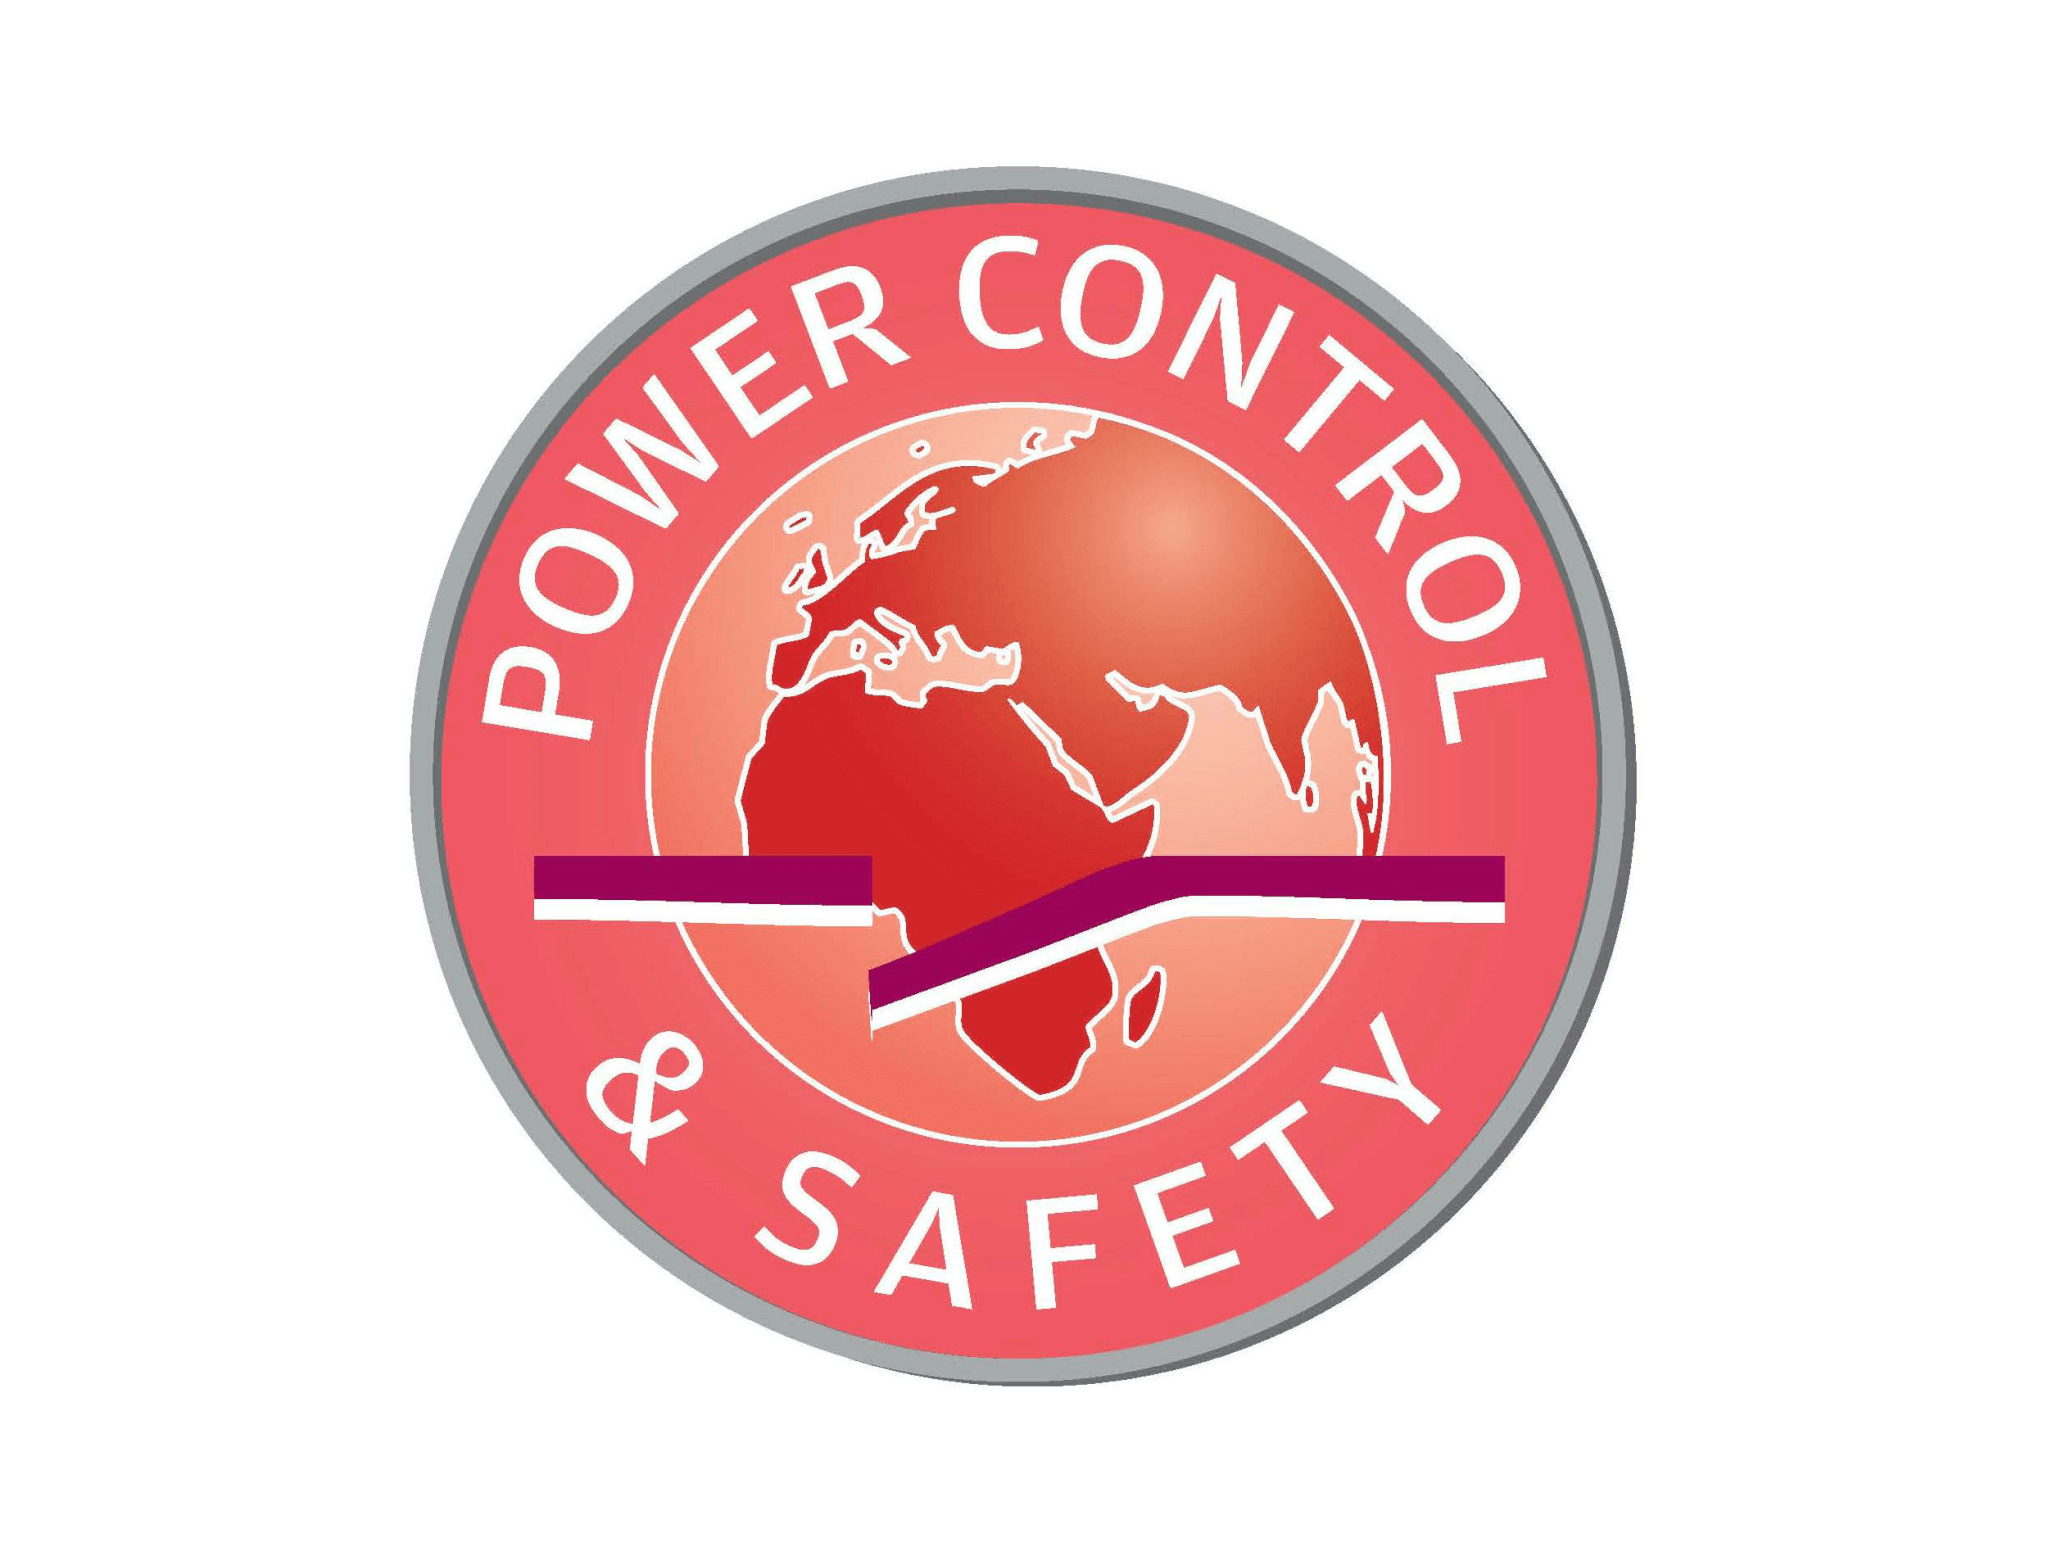 Power Control and Safety